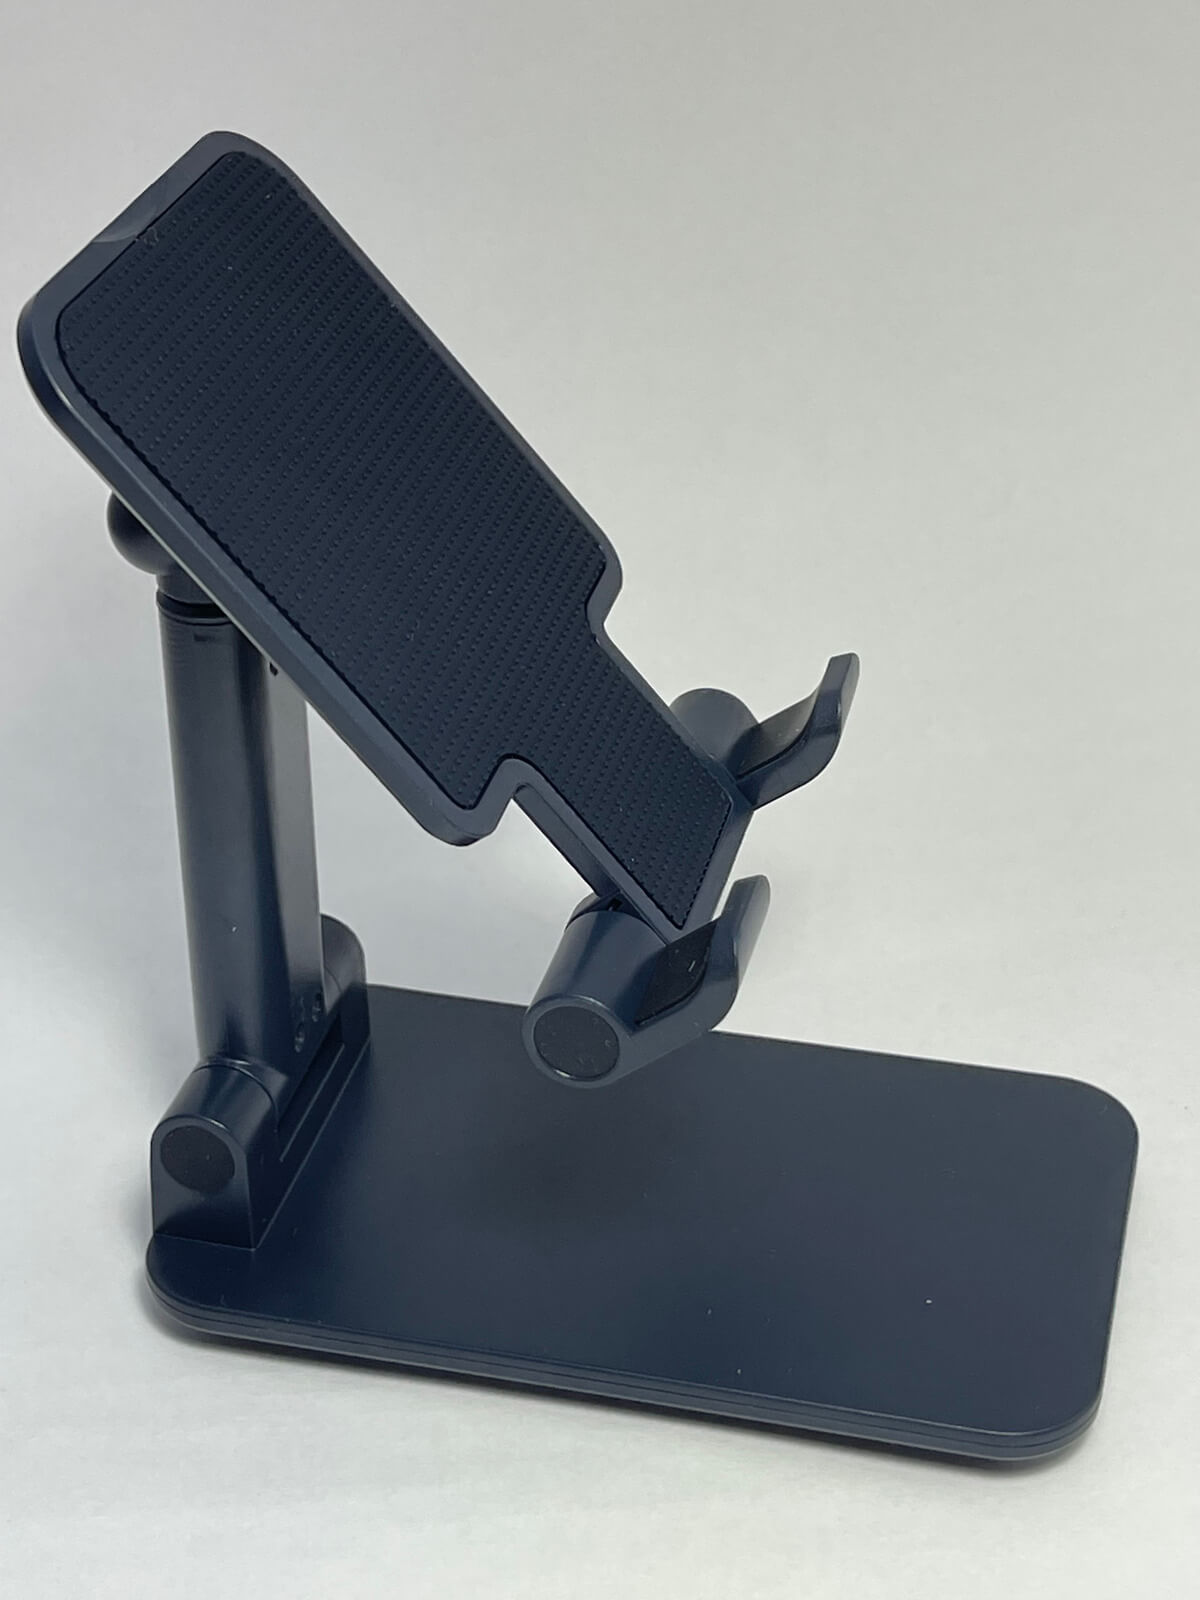 iphone12-stand-01-photo-007